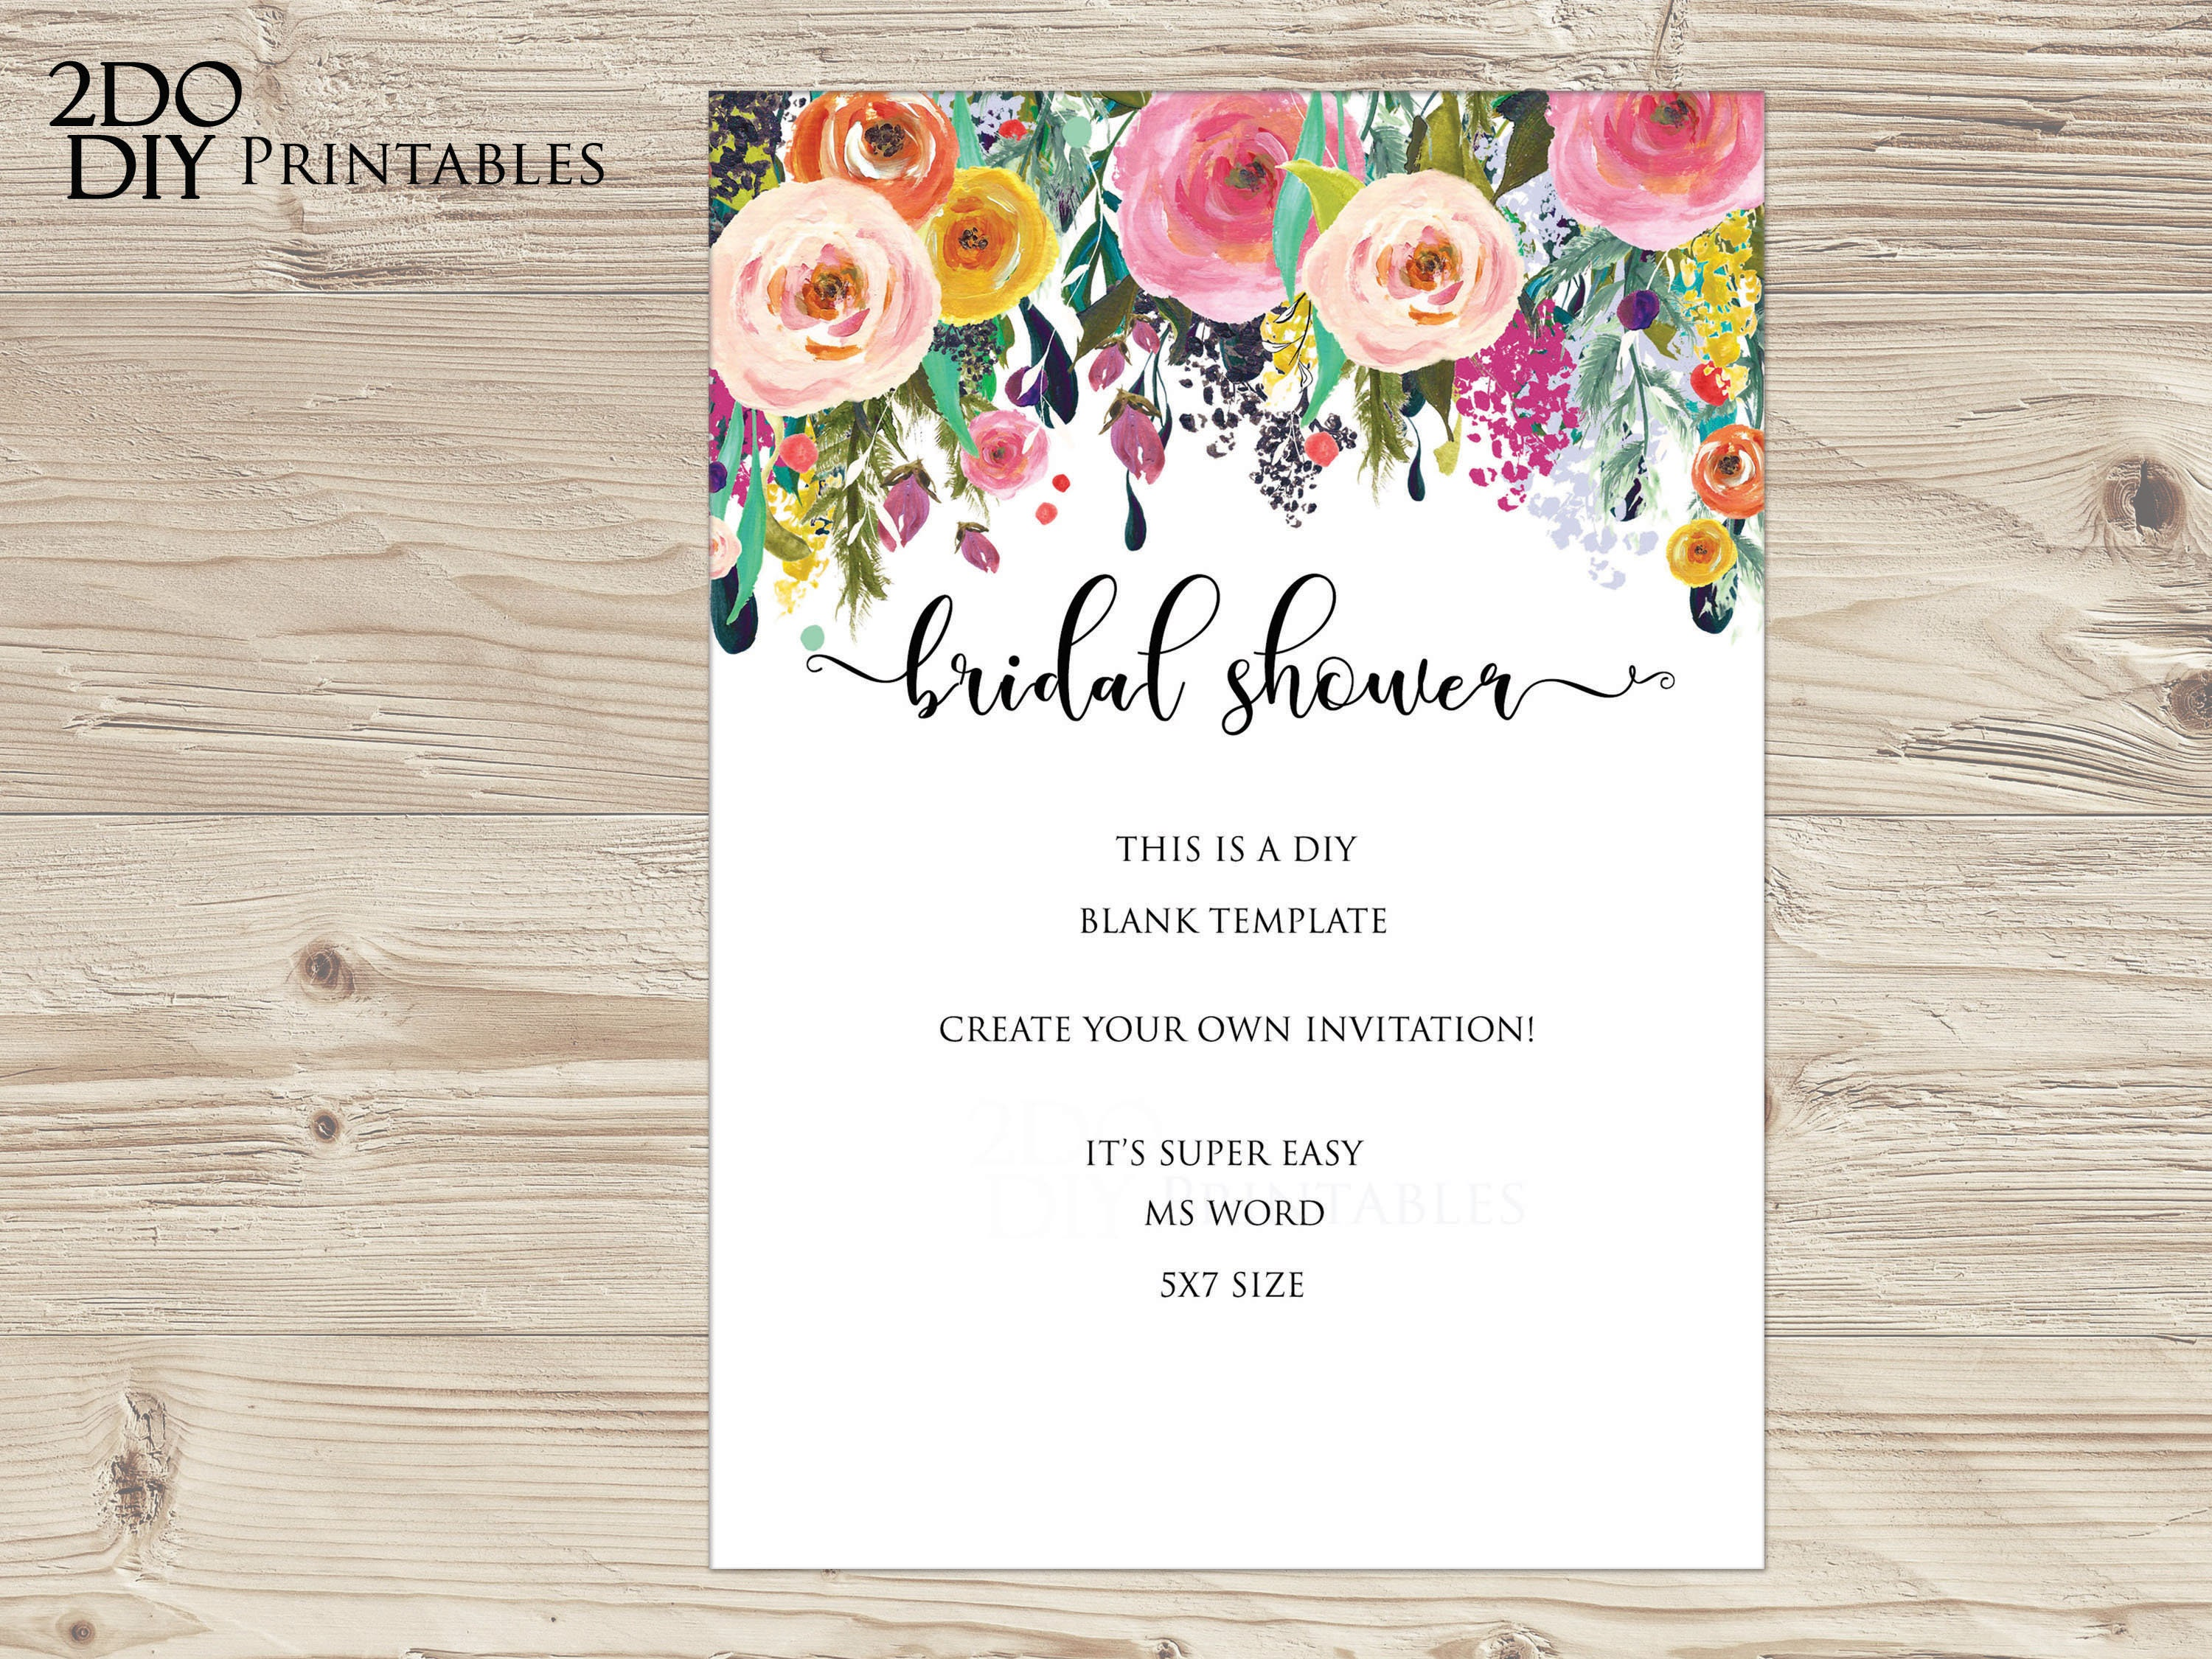 Printable Floral Invitation Bridal Shower Invitations Calligraphy Garden Bridal Shower Editable Template Ms Word Instant Download